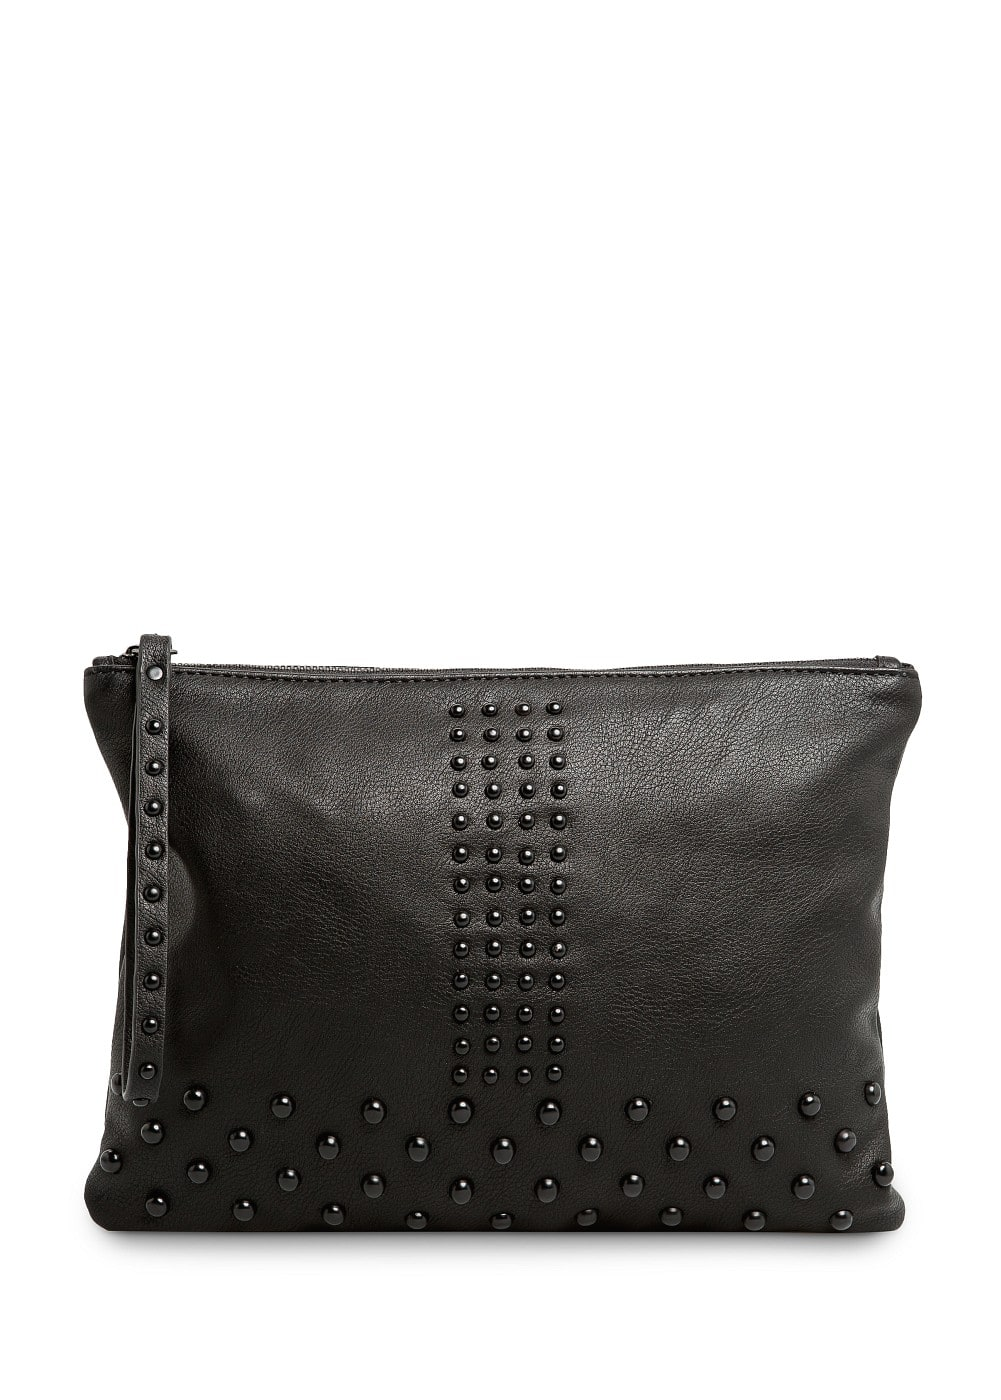 ROUNDED STUDS CLUTCH